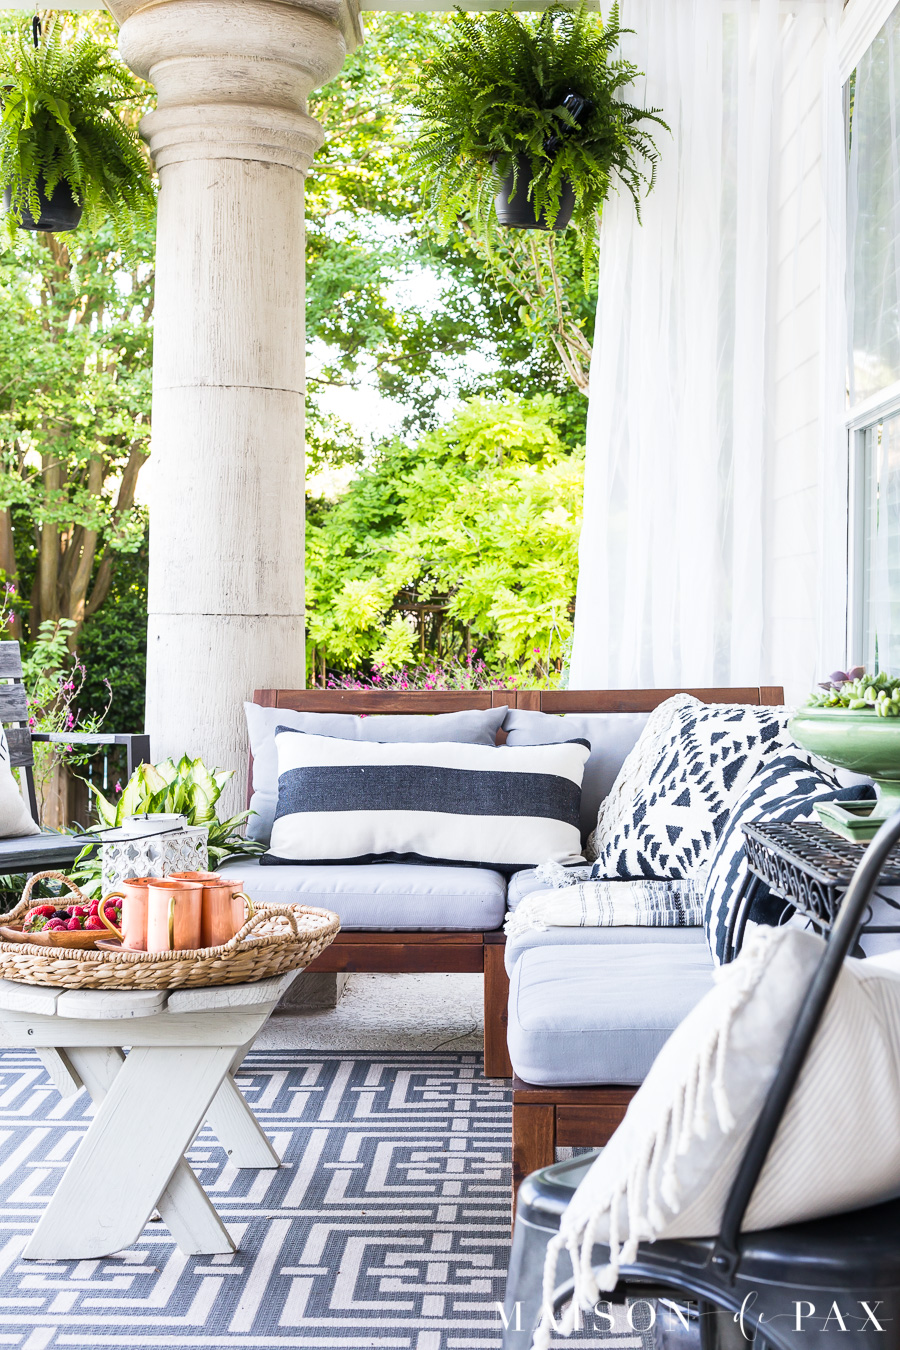 Summer Porch Decor Ideas - Maison de Pax